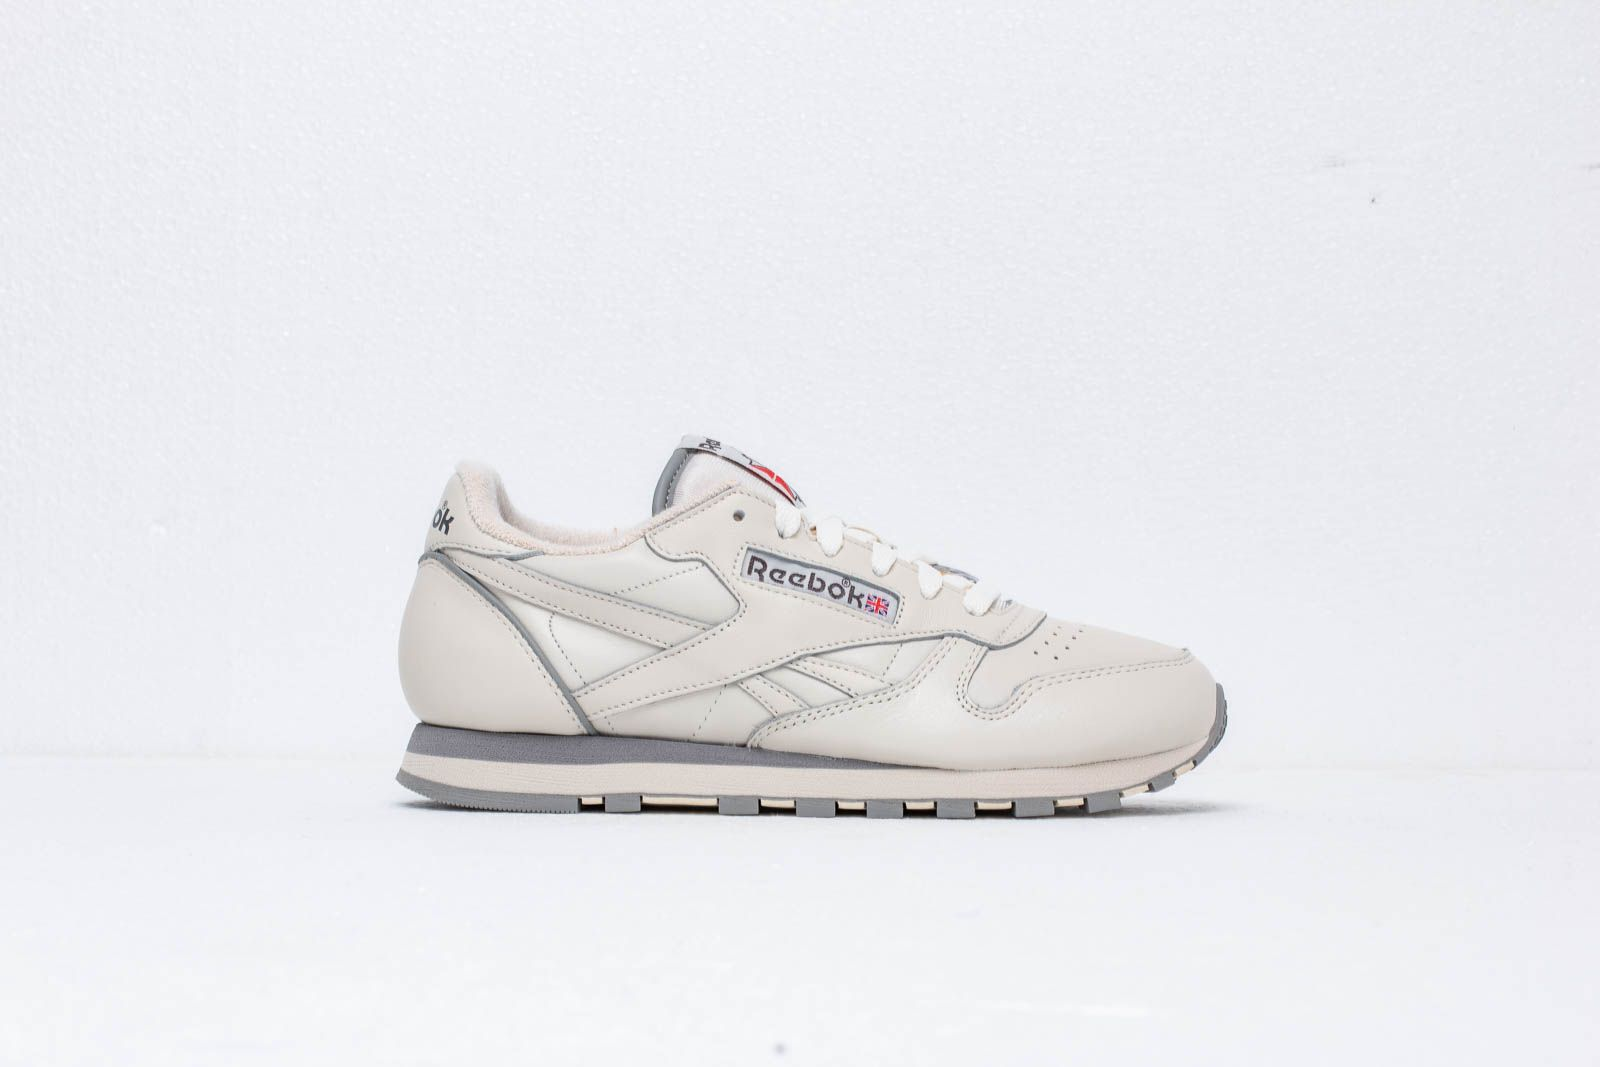 a204ebd43b6 Reebok Classic Leather 1983 TV Chalk  Paper White  Carbon at a great price  106